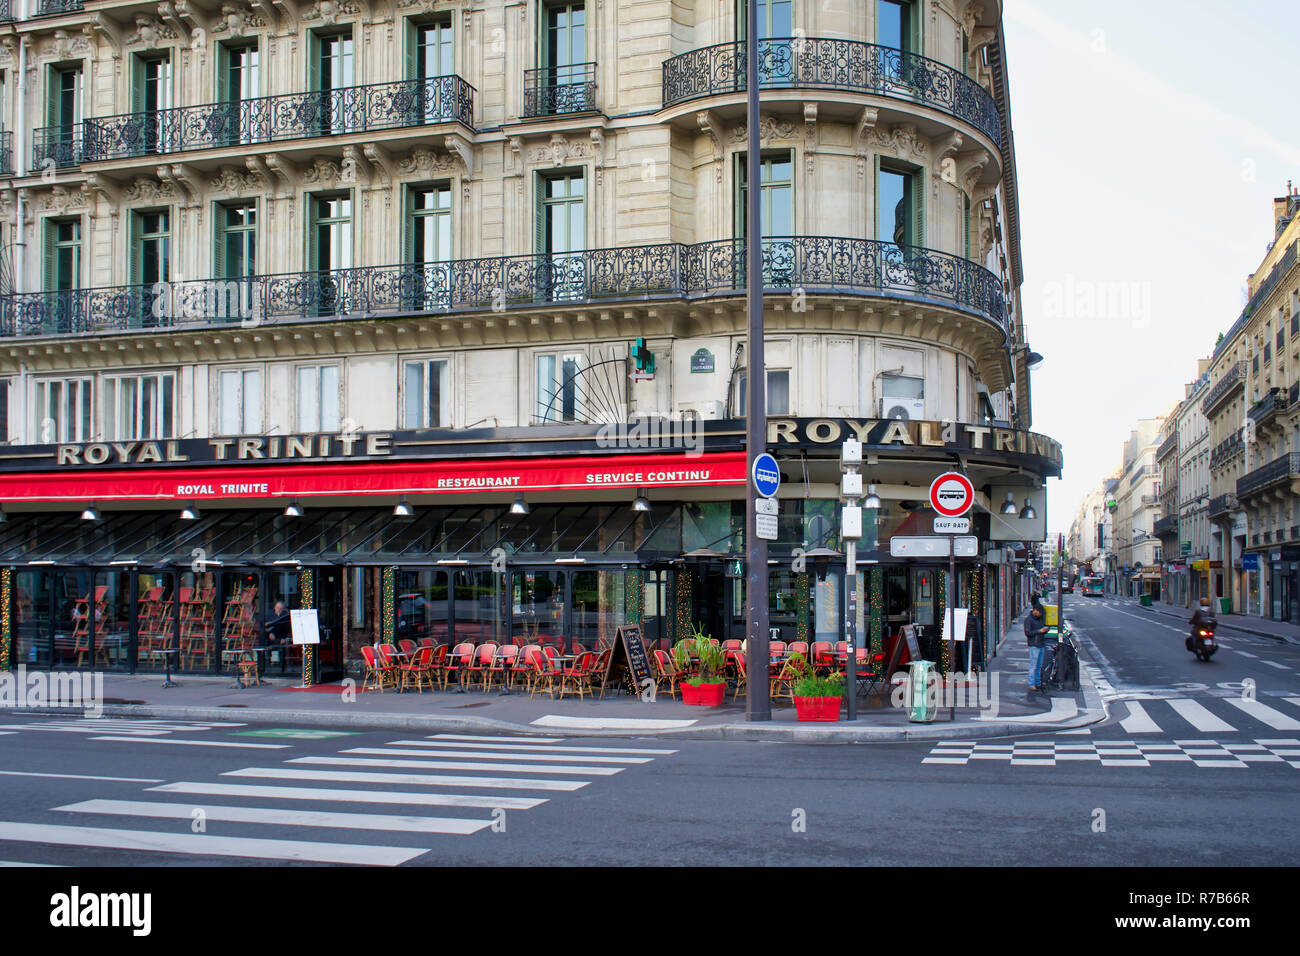 PARIS, FRANCE - MAY 26, 2018: Old city building in the 9th arrondissement, the restaurant Royal Trinite on the first floor Stock Photo